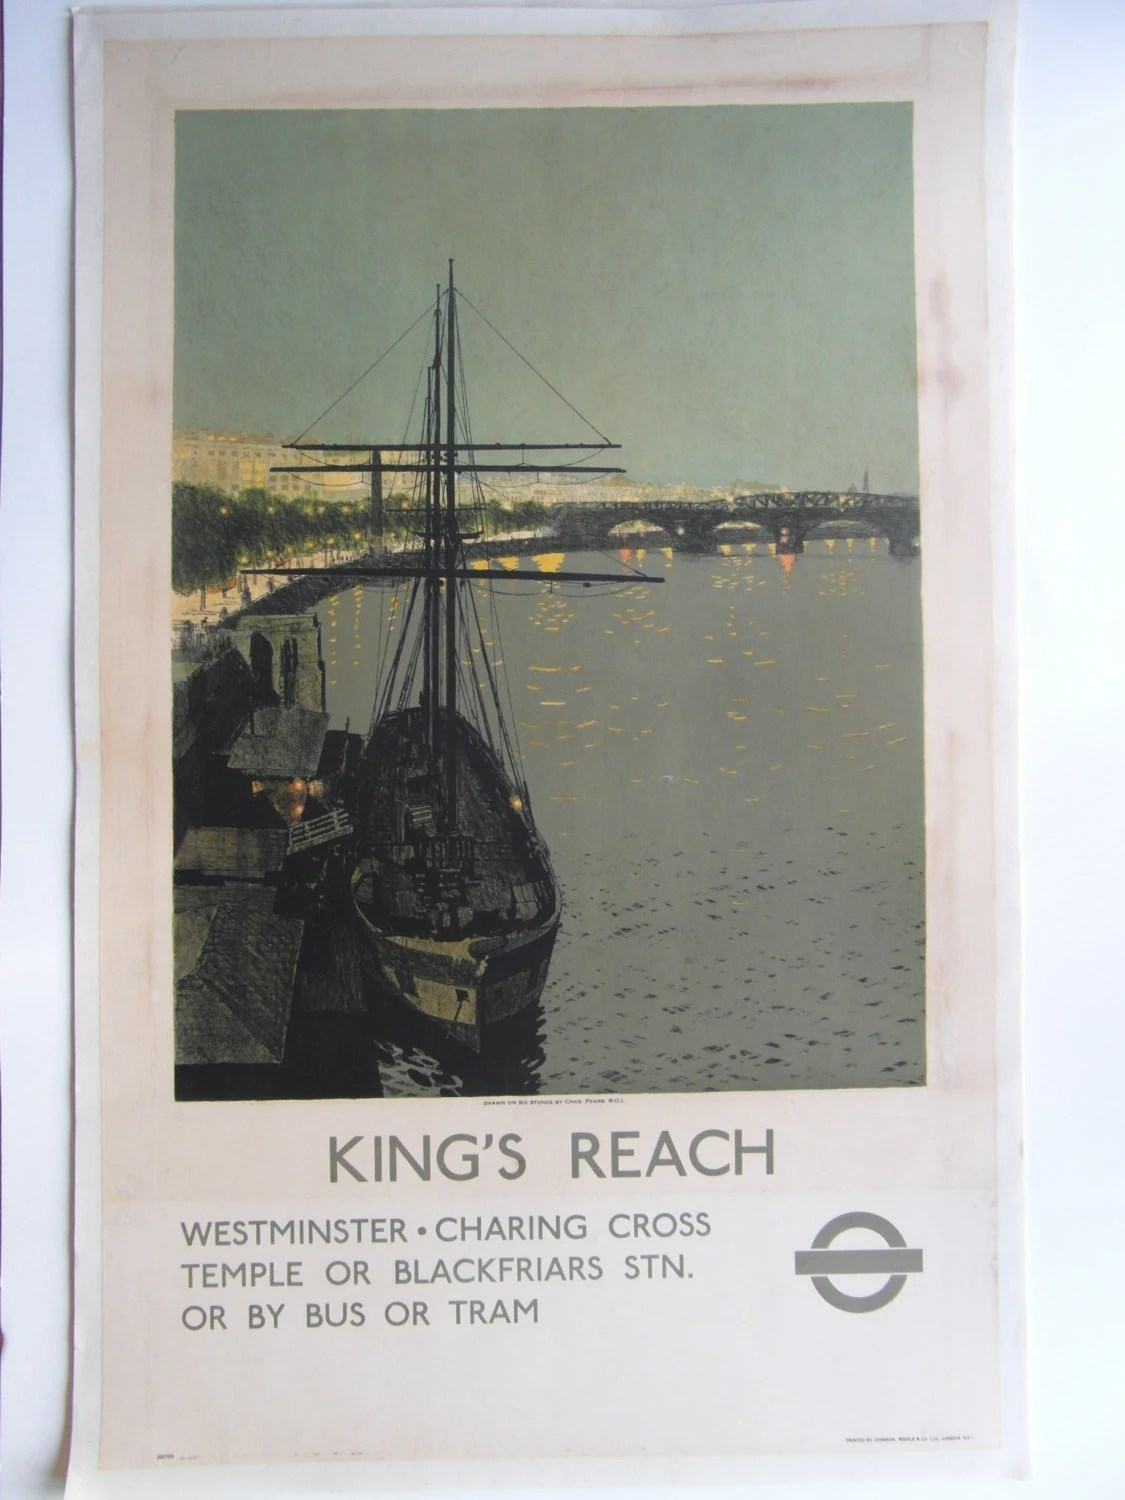 Original 1936 London Underground Poster 'King's Reach' by Charles Pears - VintageLines